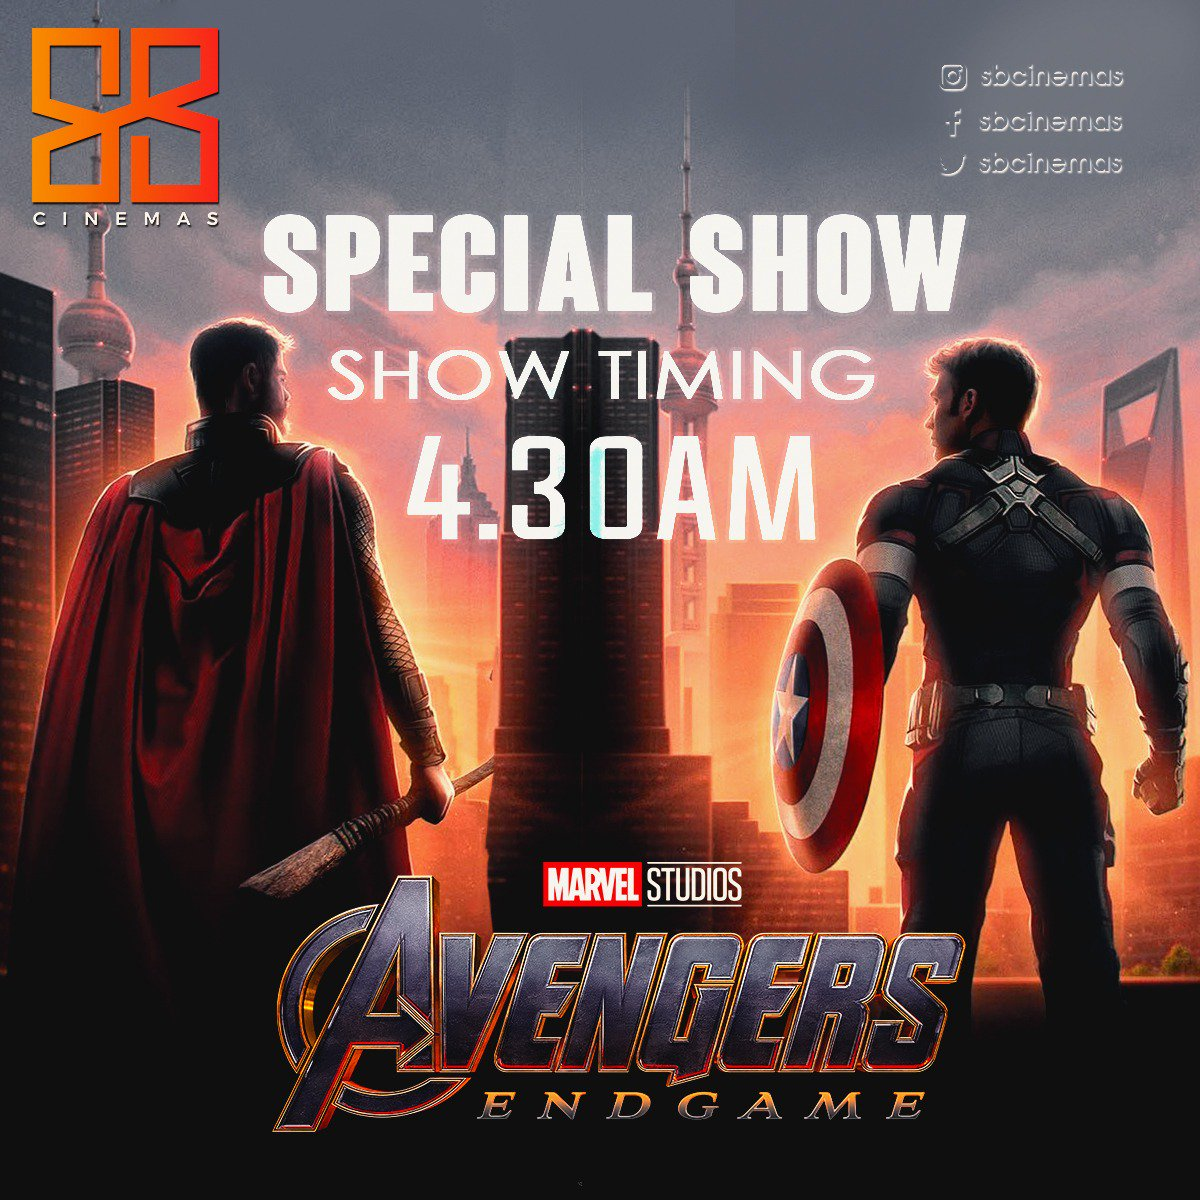 AVENGERS END GAME,ENGLISH 3D,4:30 AM.  Hey guys, the moment we all Marvel fans have been waiting for is finally here.  GRAB YOUR TICKETS SOON, BE THE FIRST ONE TO WATCH THE MOVIE !  Bookings open tomorrow morning.  #Endgame #MarvelStudios #BookMyShow # #AvengersEndgame